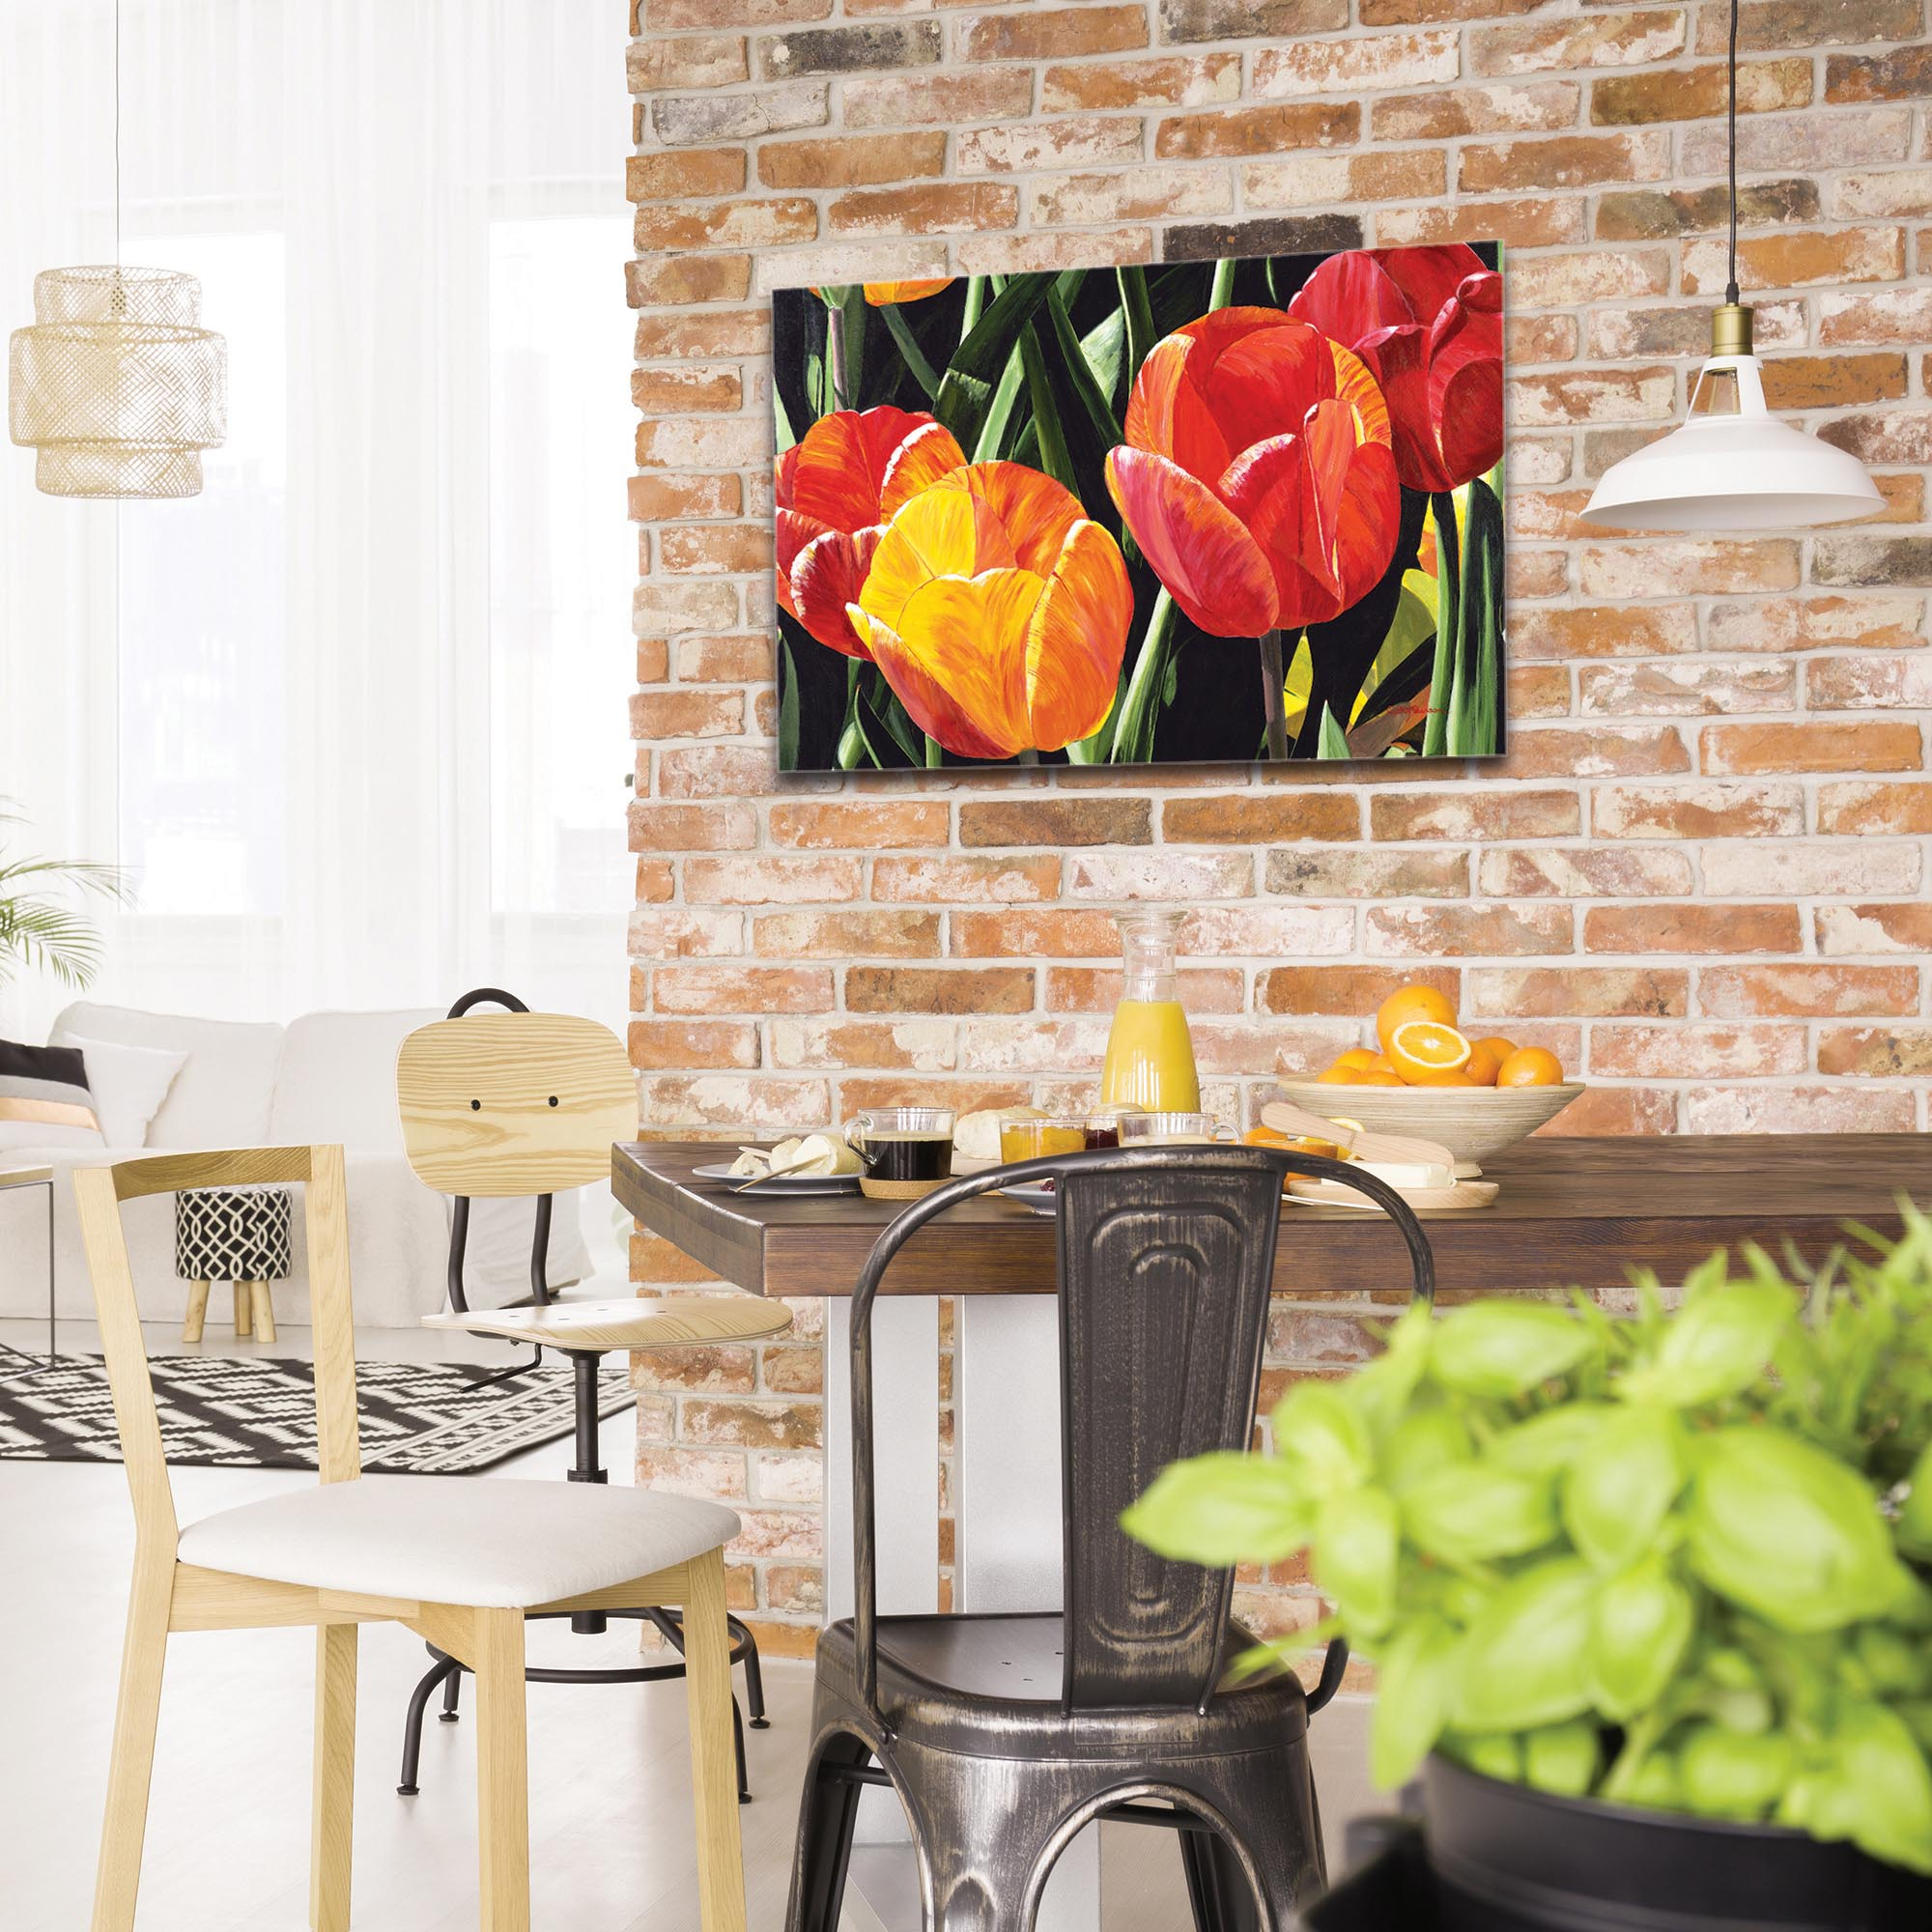 Traditional Wall Art 'Tulip Field' - Floral Decor on Metal or Plexiglass - Image 3